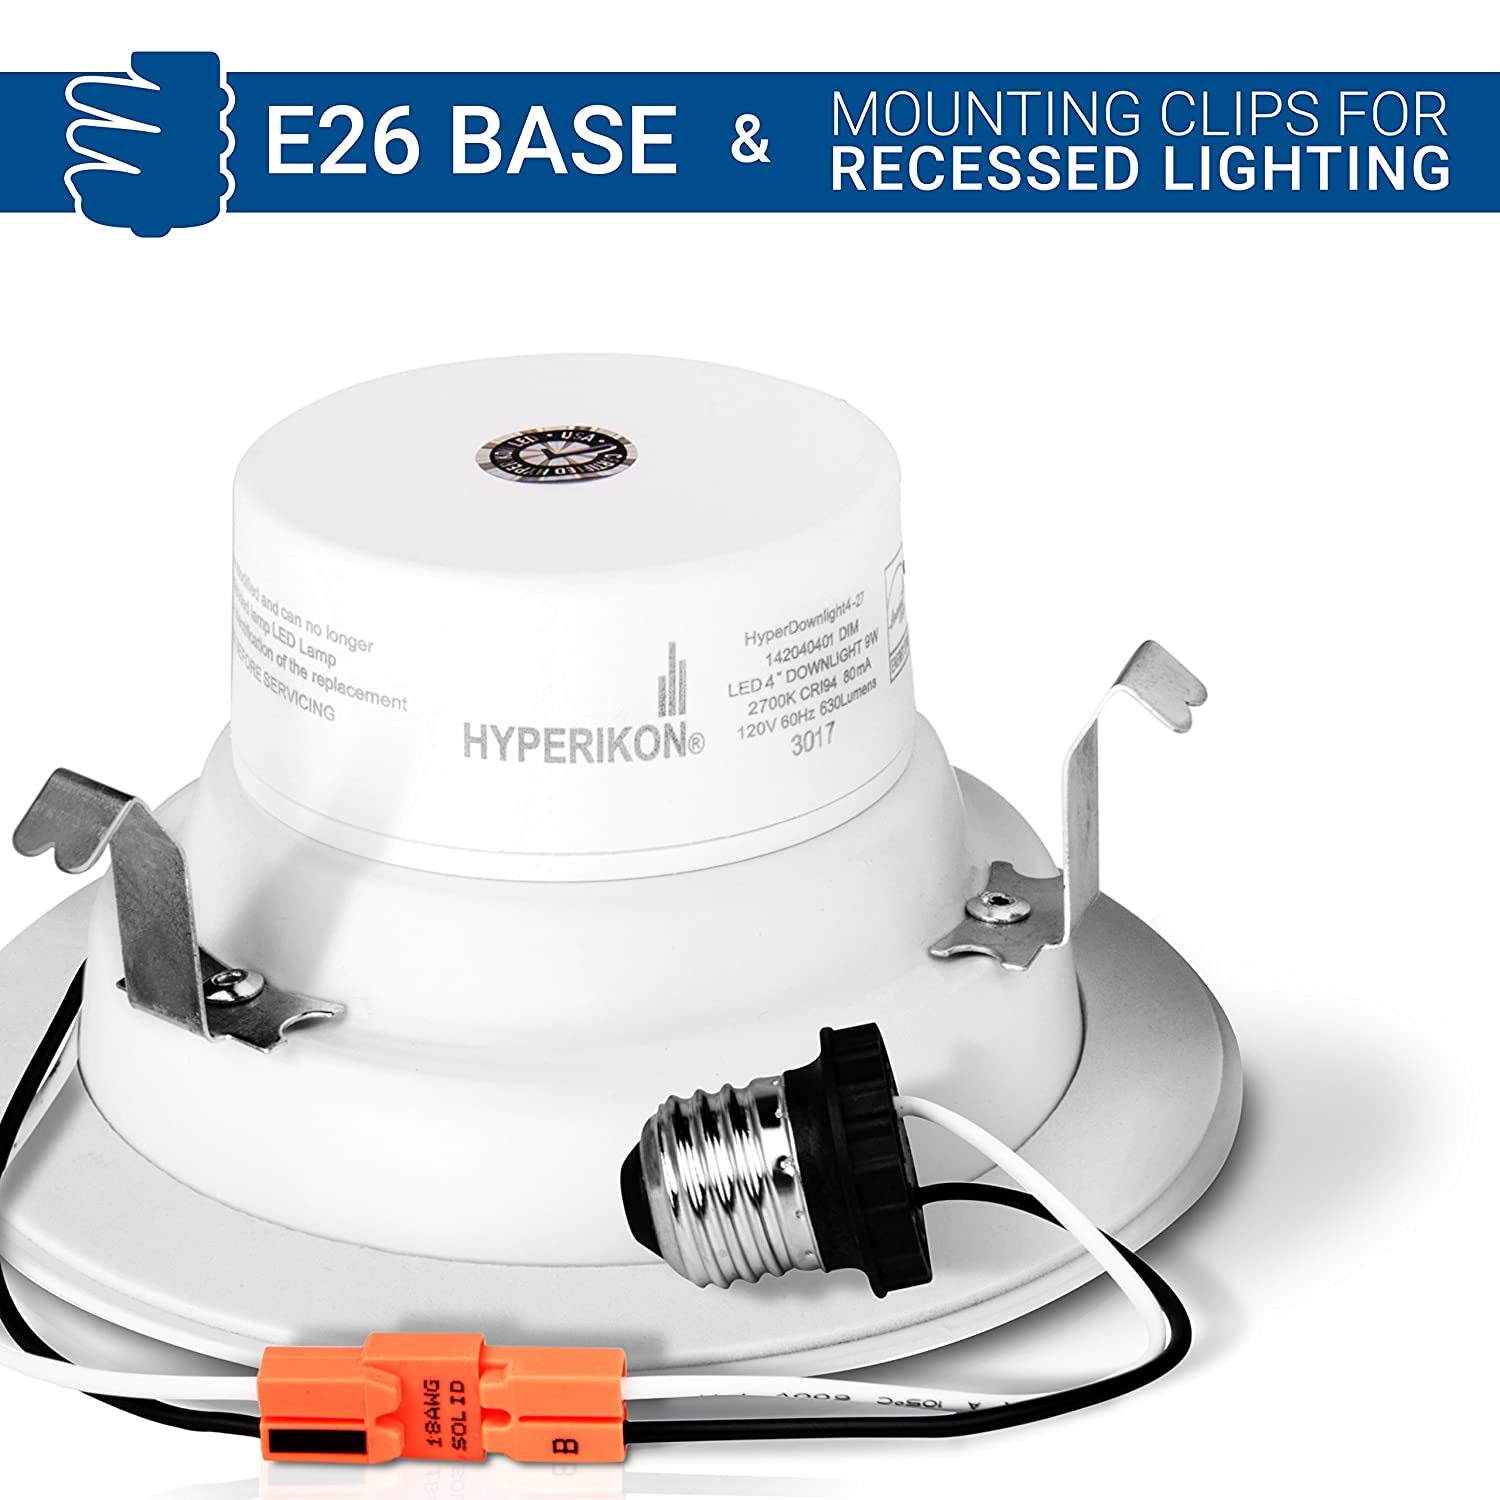 Hyperikon 4 Inch Dimmable Recessed Led Downlight 9w 65w Equivalent Wiring Diagram 2700k Warm White Cri94 Retrofit Lighting Fixture Energy Star 630 Lumens Great